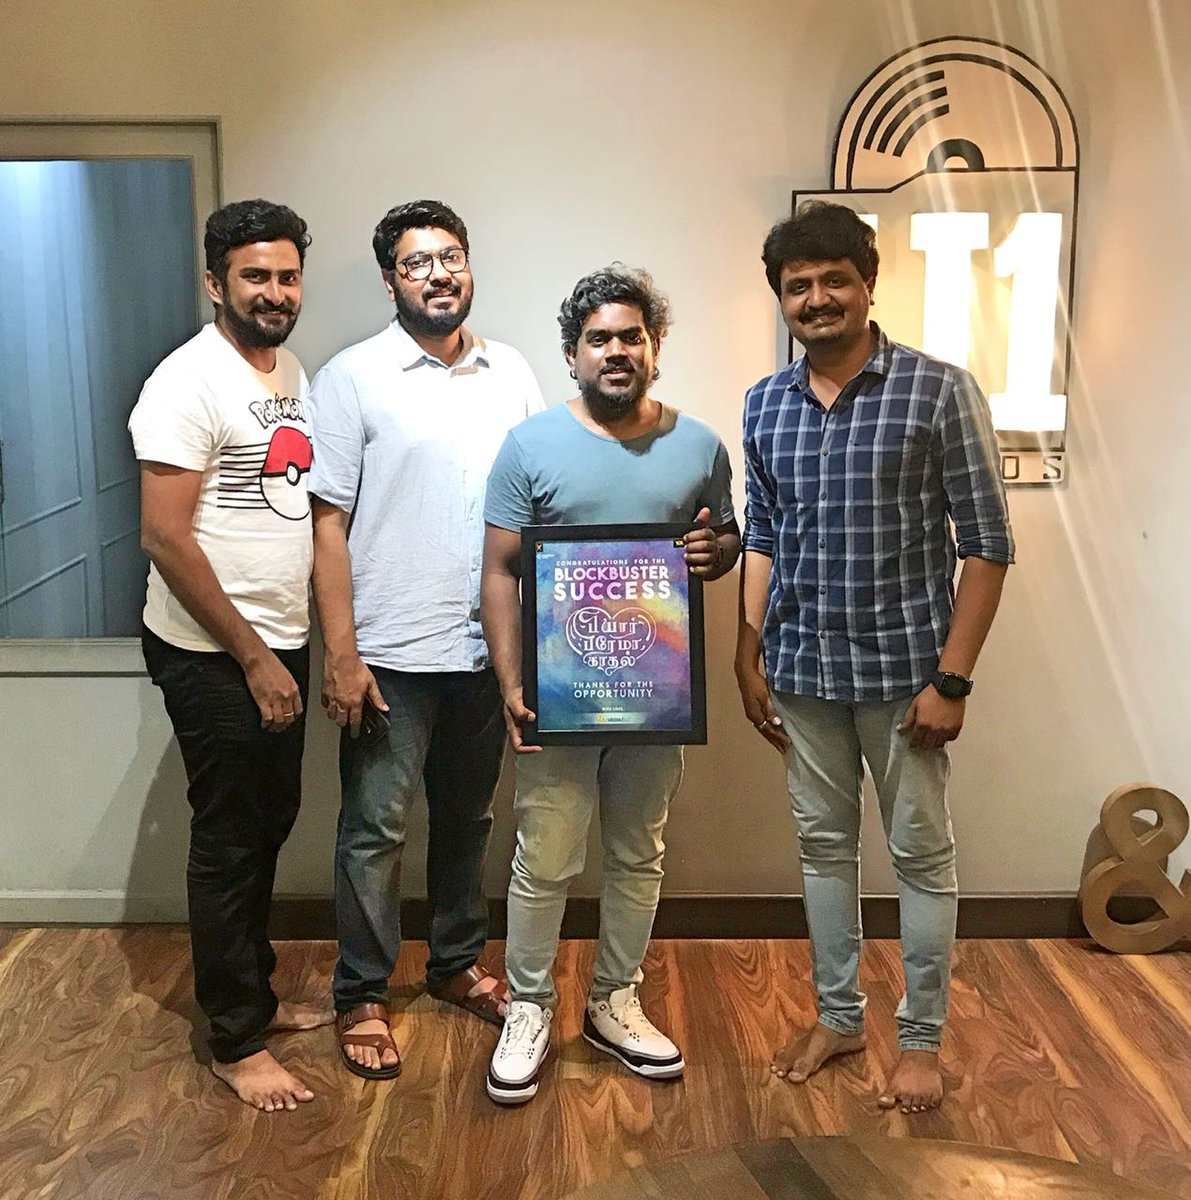 On the Occasion of #2YearsofCTCMediaboy... We met #Yuvan Sir to thank him for the opportunity to work with the Blockbuster Hit Movie #PyarPremaKhaadal. Proud Moment. Thanks #IrfanMalik bro and #Rajarajan bro for trusting us.